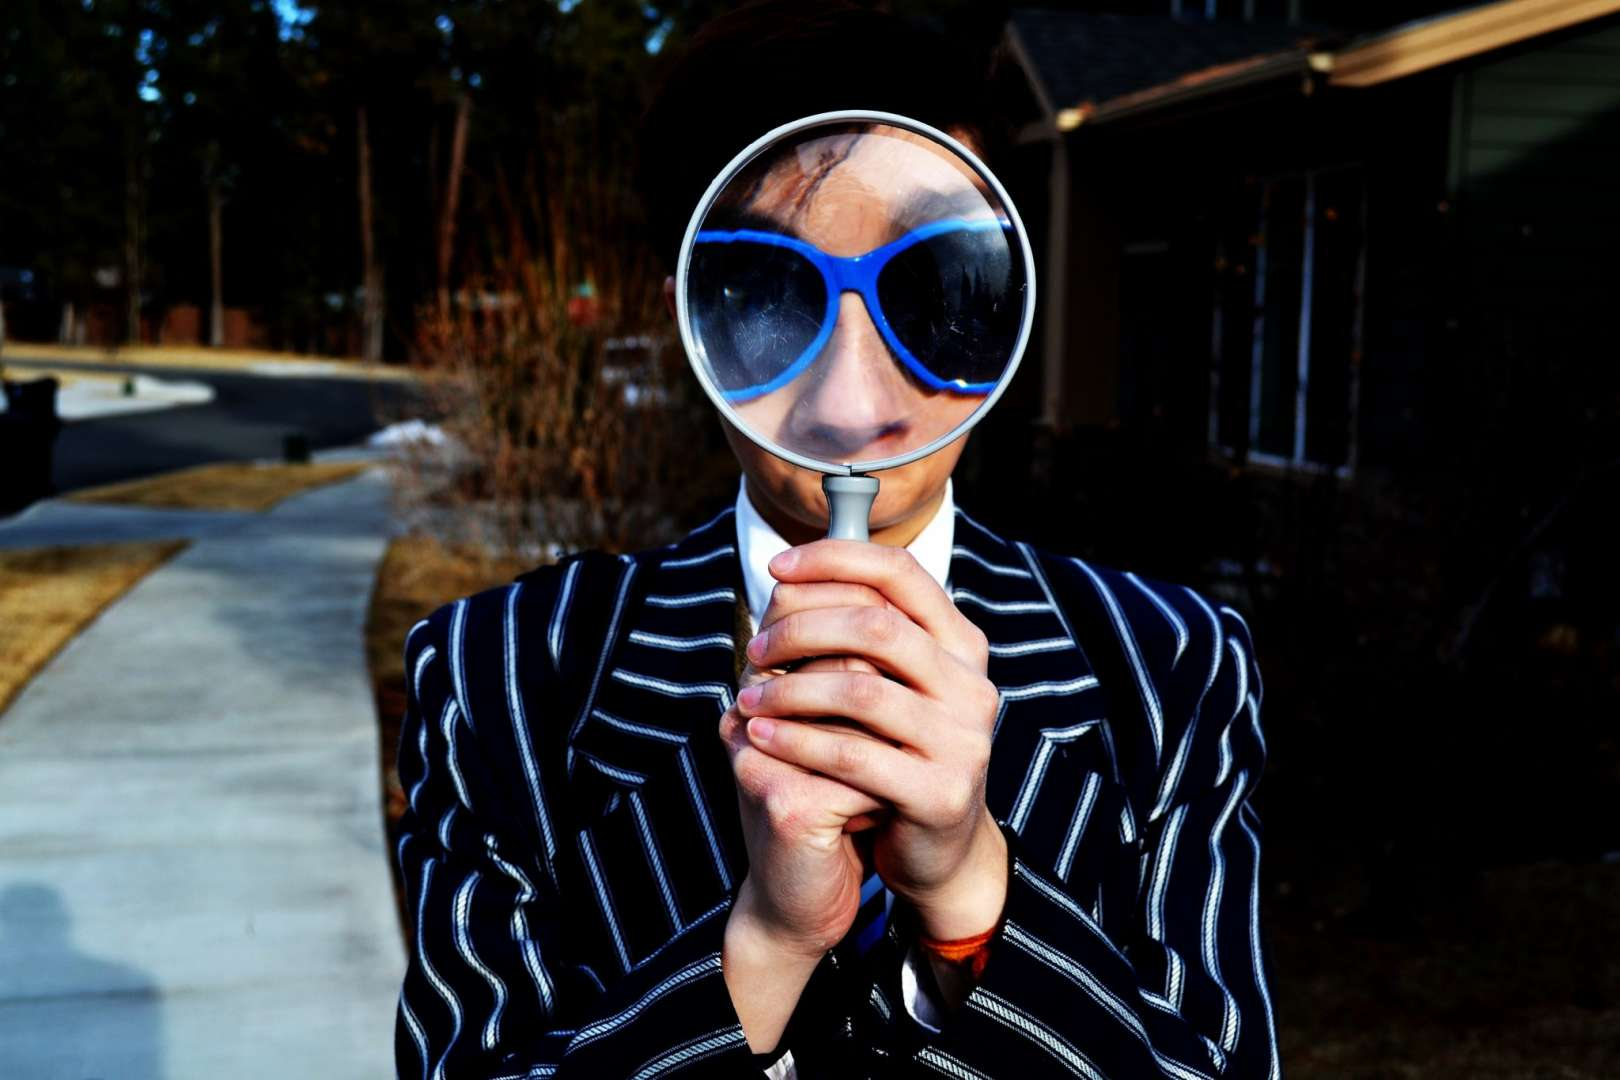 Man In Suit and Sunglasses Looking Through a Magnifying Glass